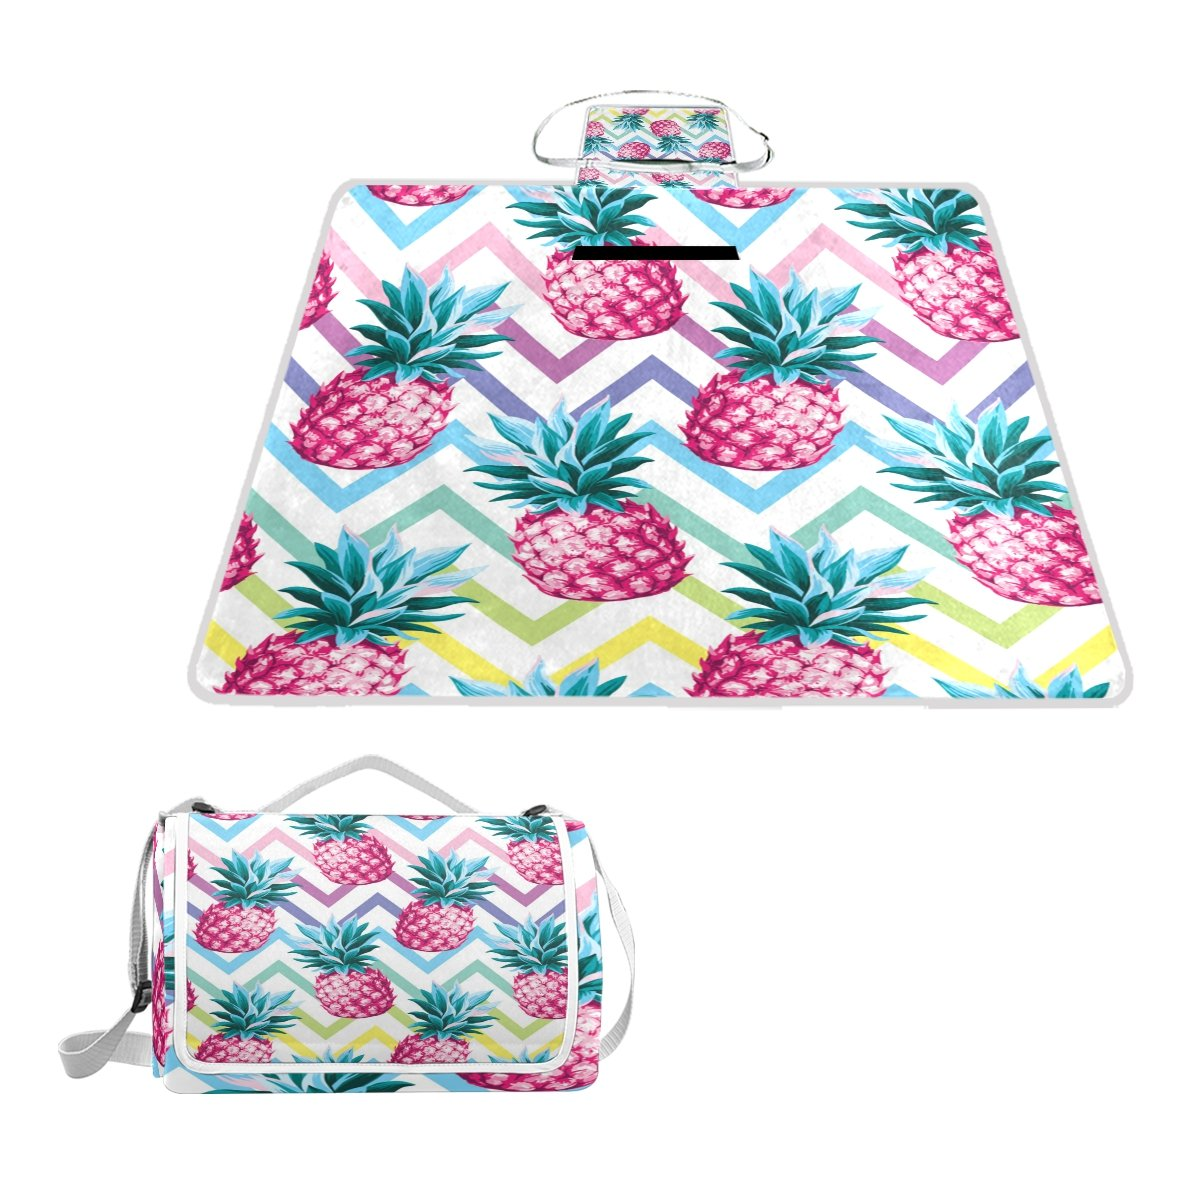 Naanle Chevron Pink Pineapple Fruit Picnic Blanket Outdoor Picnic Blanket Tote Water-Resistant Backing Handy Camping Beach Hiking Mat by Naanle